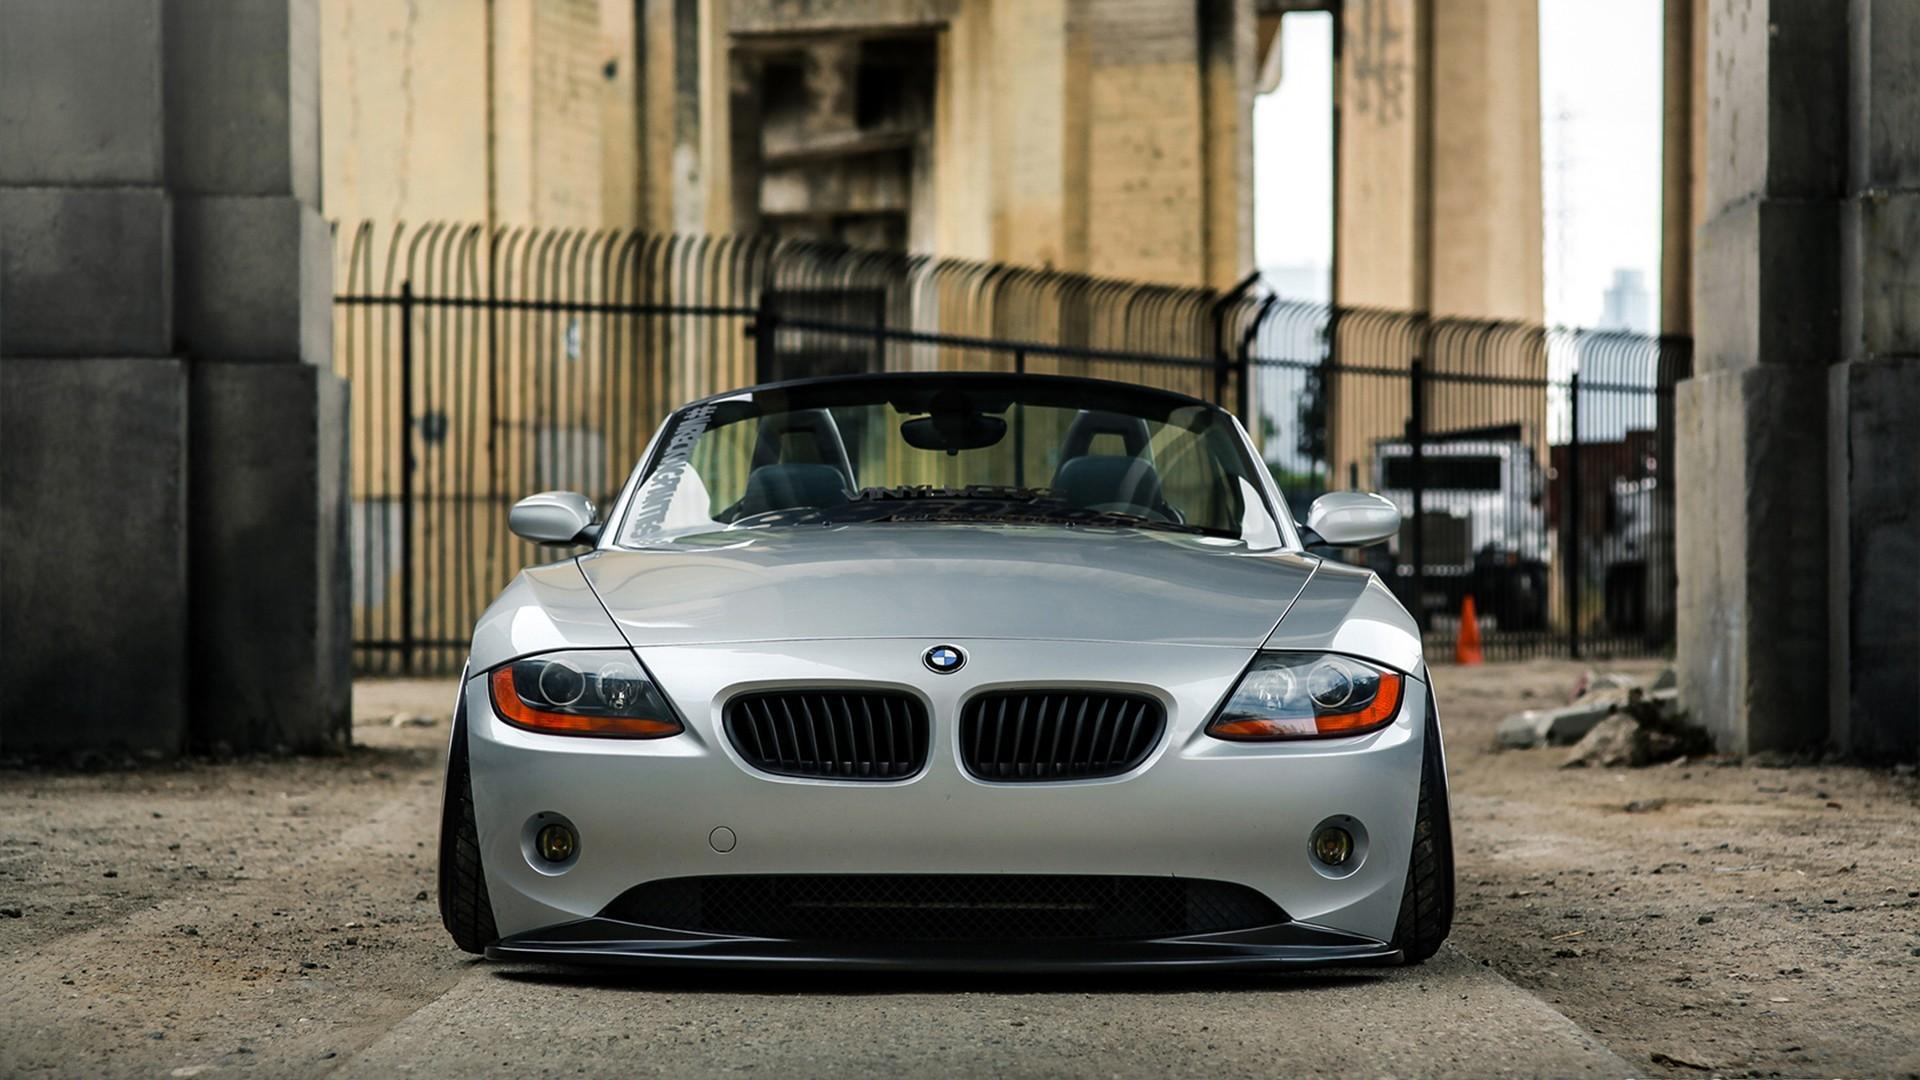 Bmw z4 coupe slammed cars wallpaper 62608 1920x1080